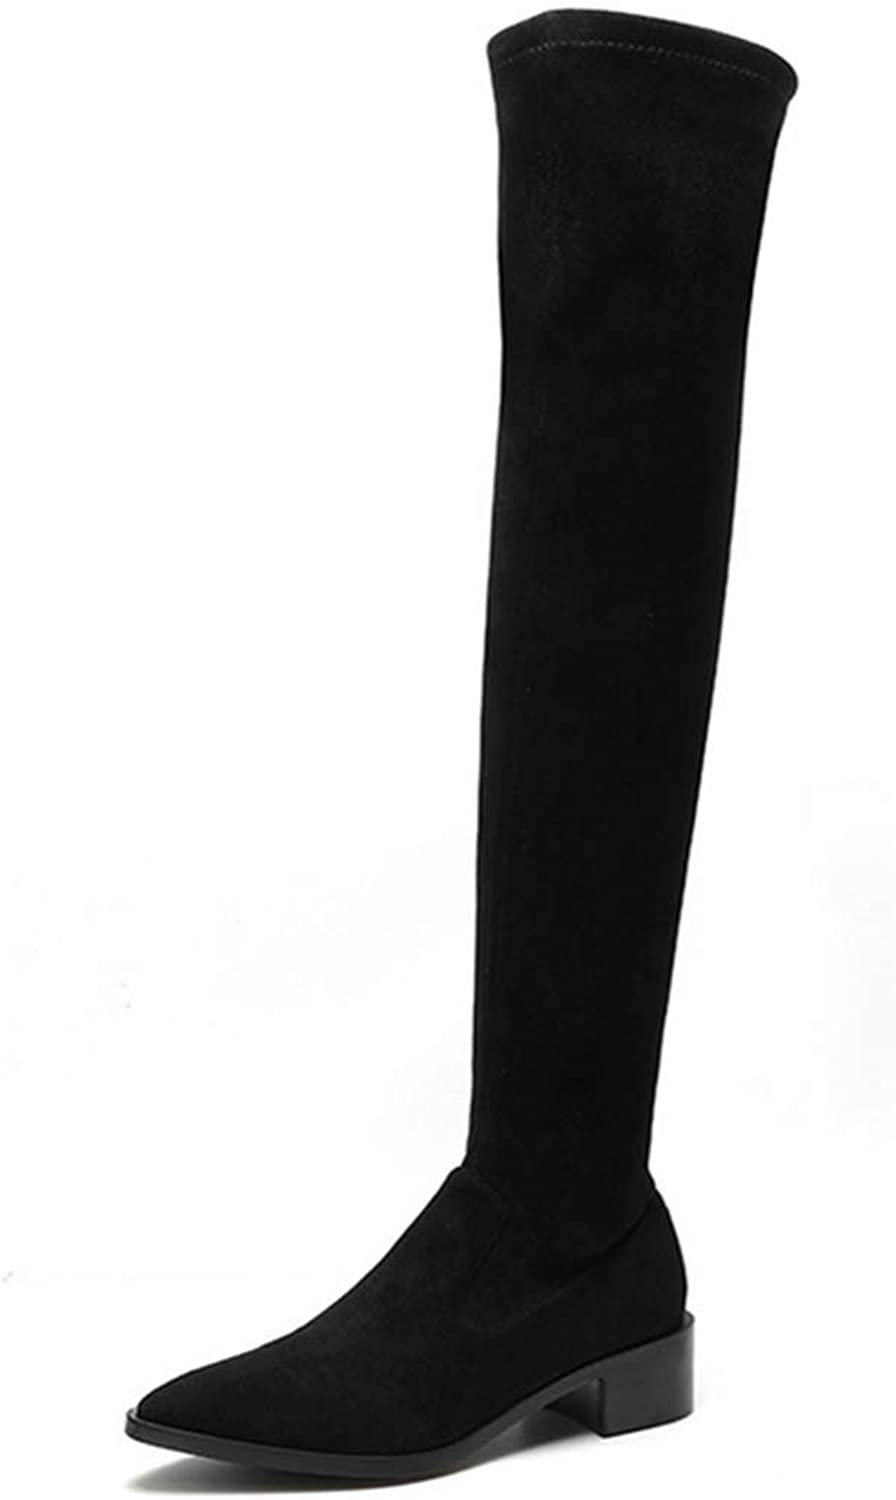 Shiney Women's shoes Over-The-Knee Boots Winter Suede Pointed Chunky Heel Plus Velvet Warm shoes